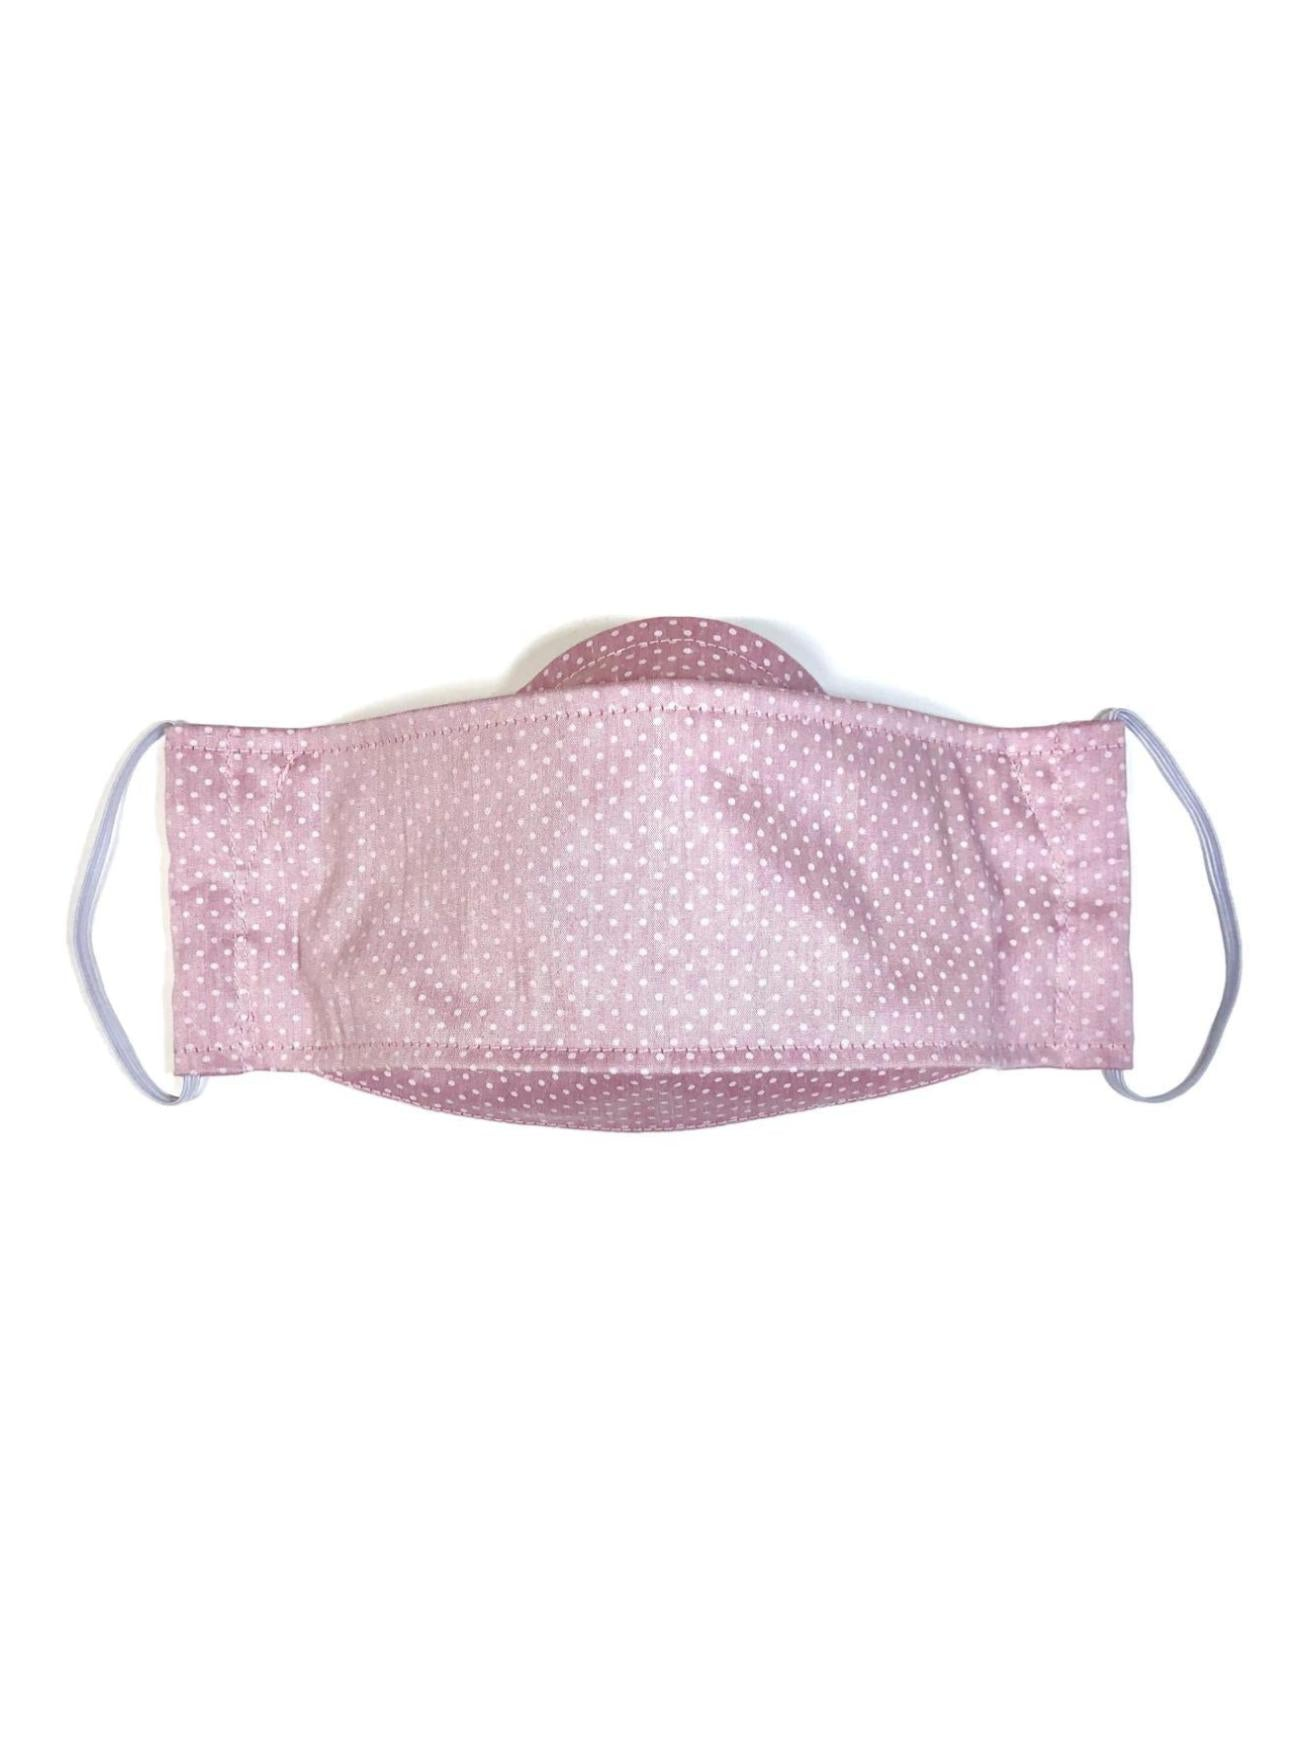 Pink Polka Dot, Child's Reusable Face Mask [3-layers]